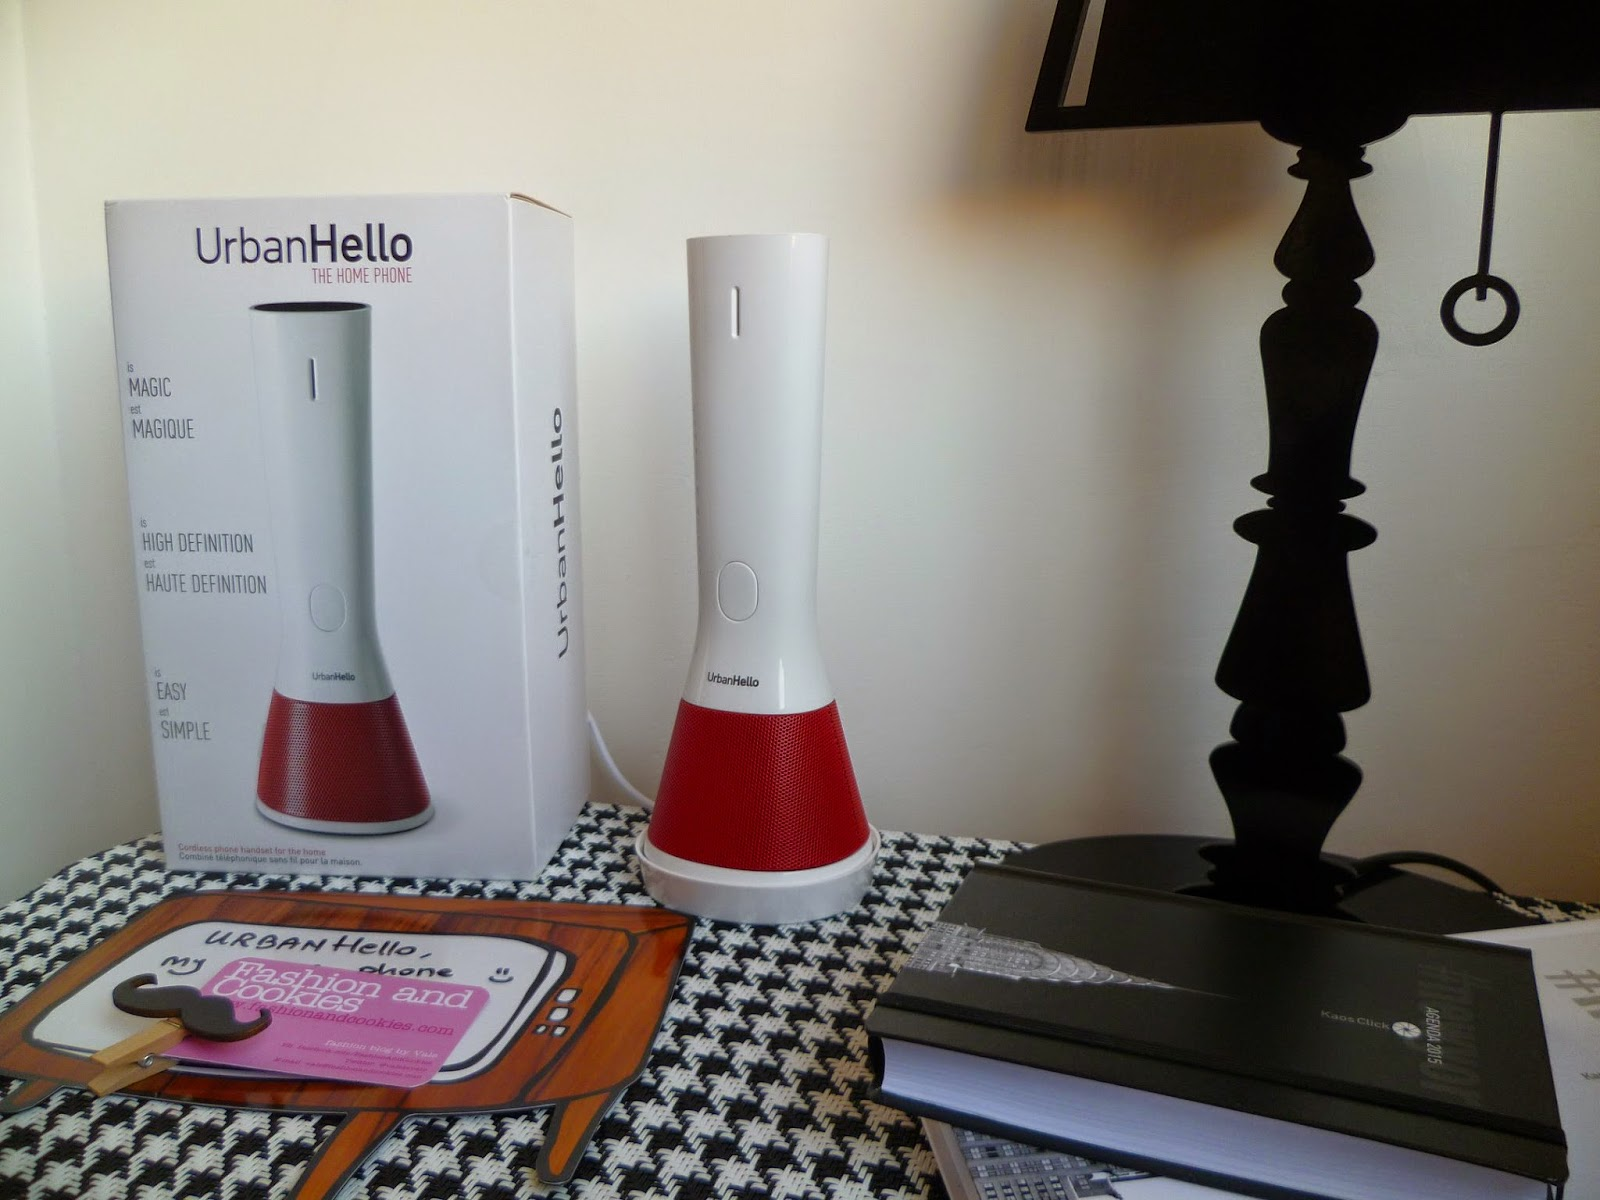 The best cordless for home with a 360° speaker on Fashion and Cookies